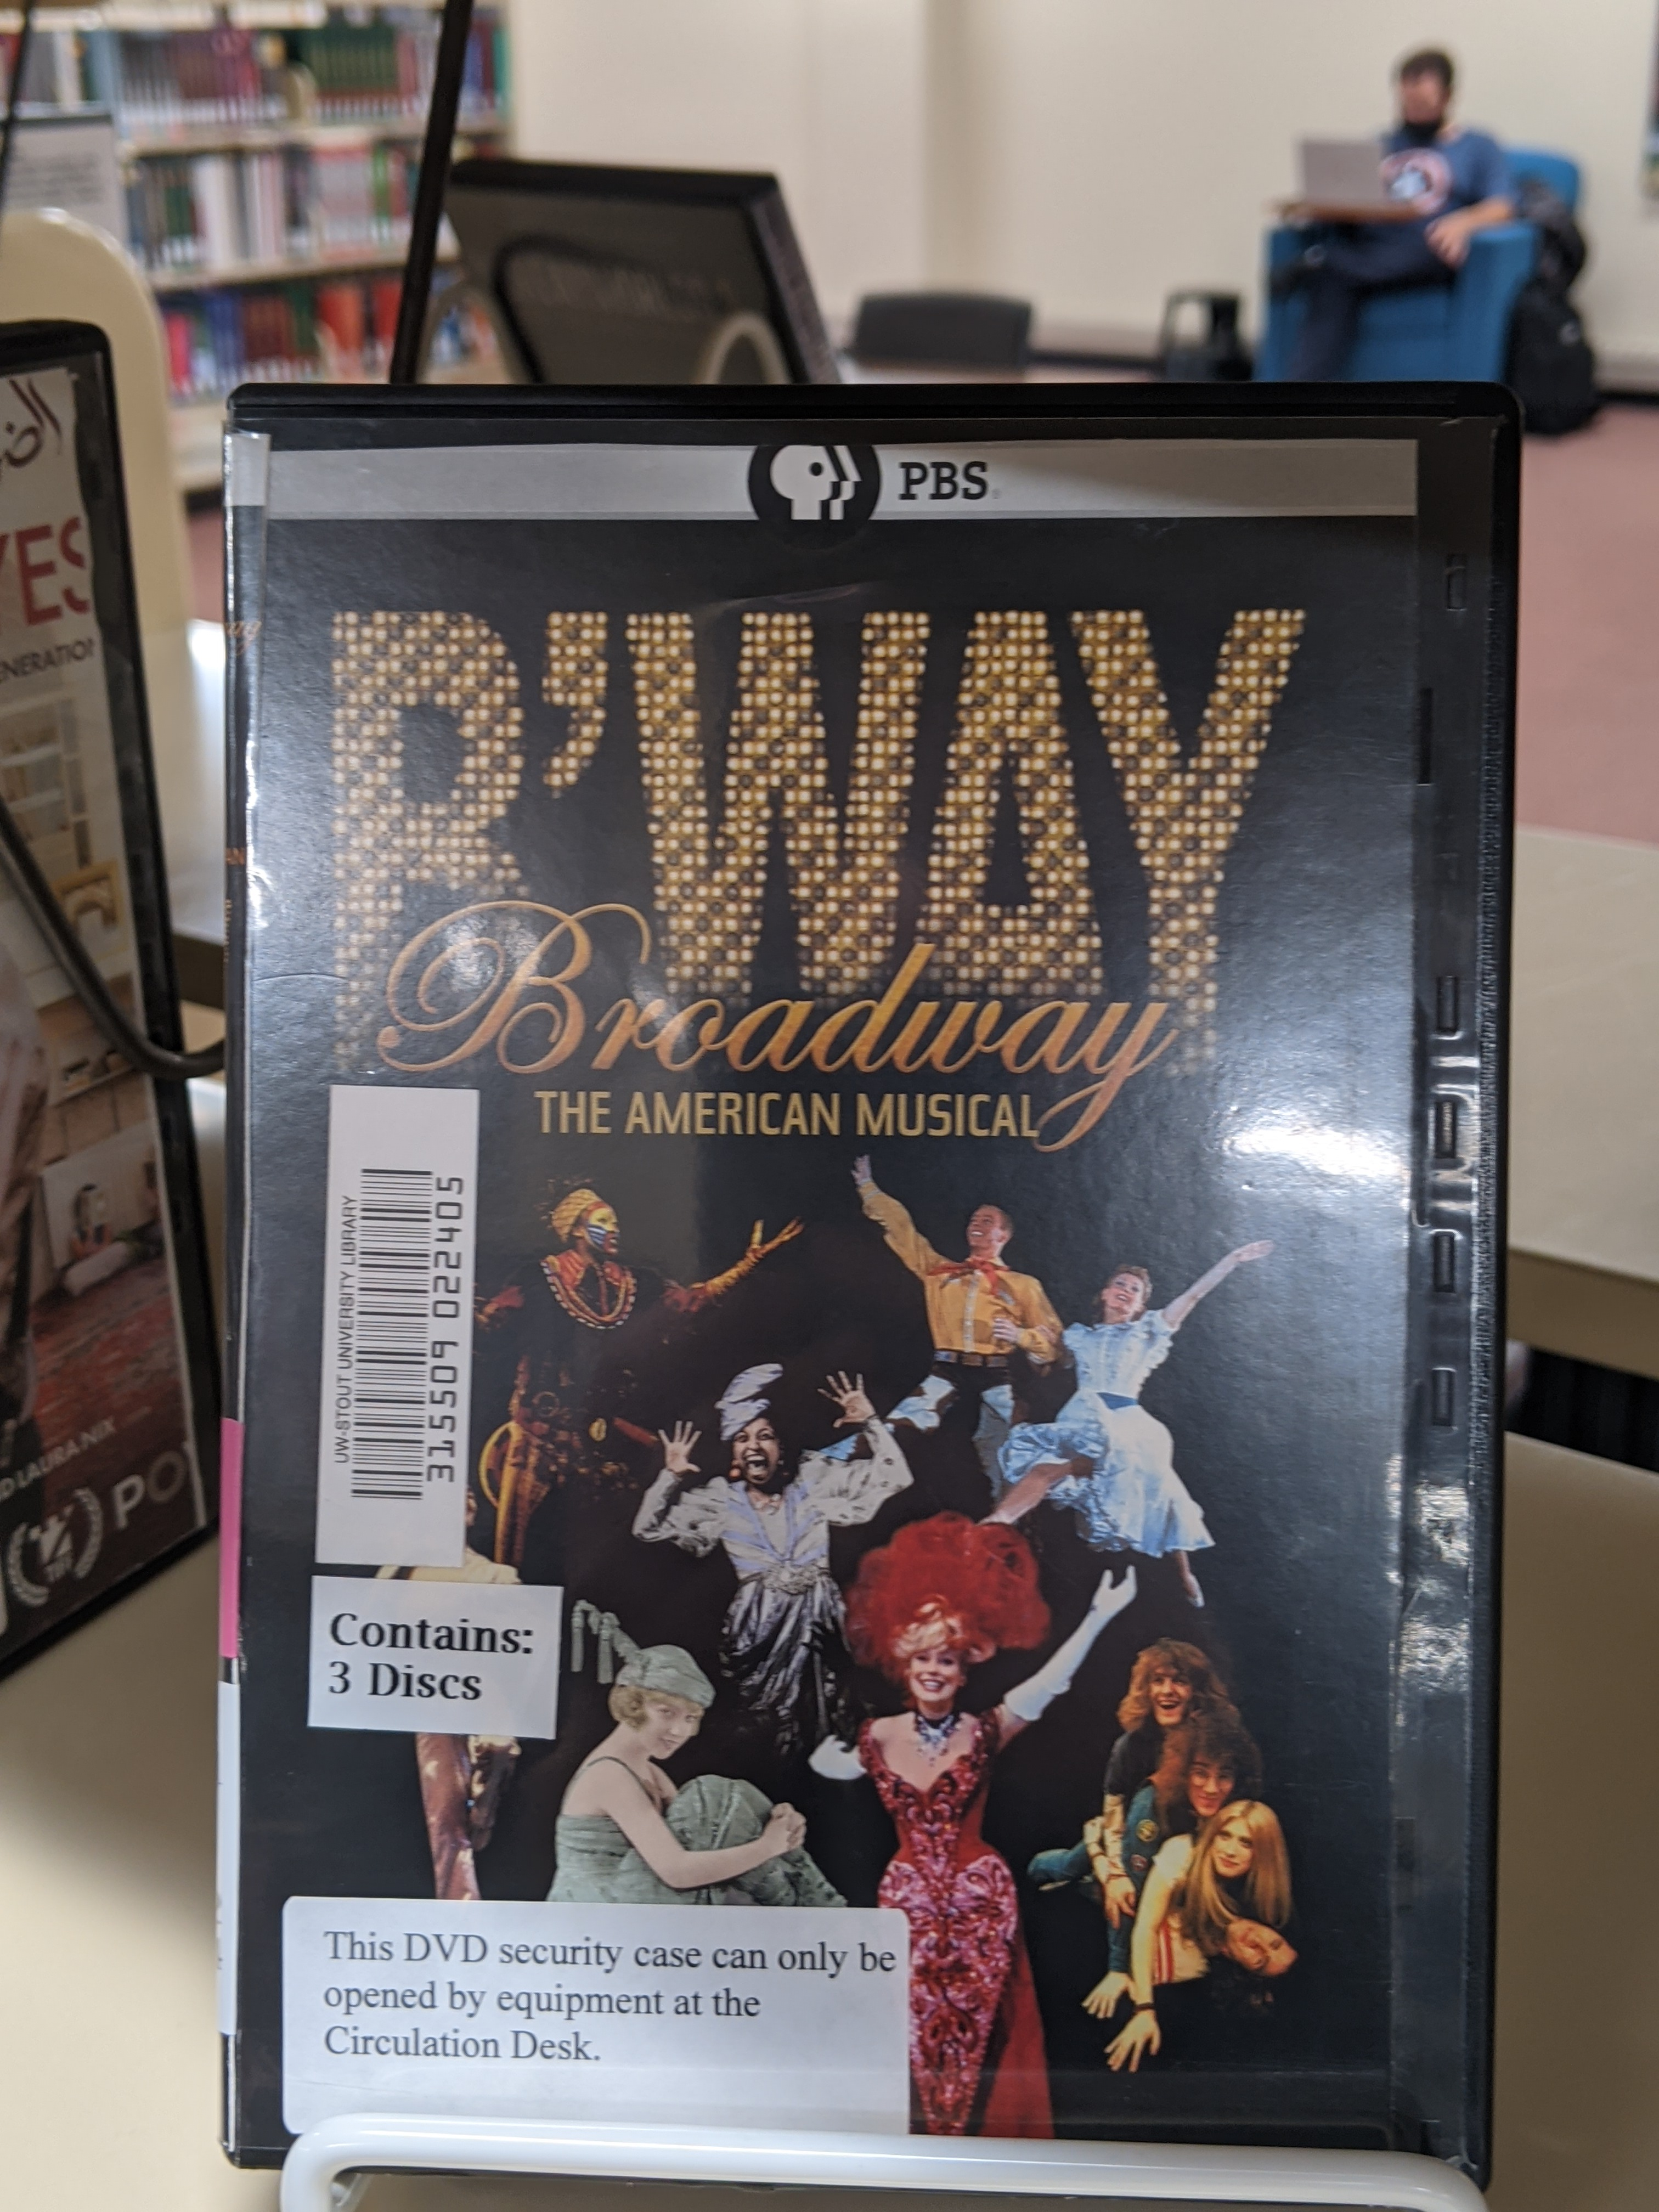 Broadway the American Musicals cover art